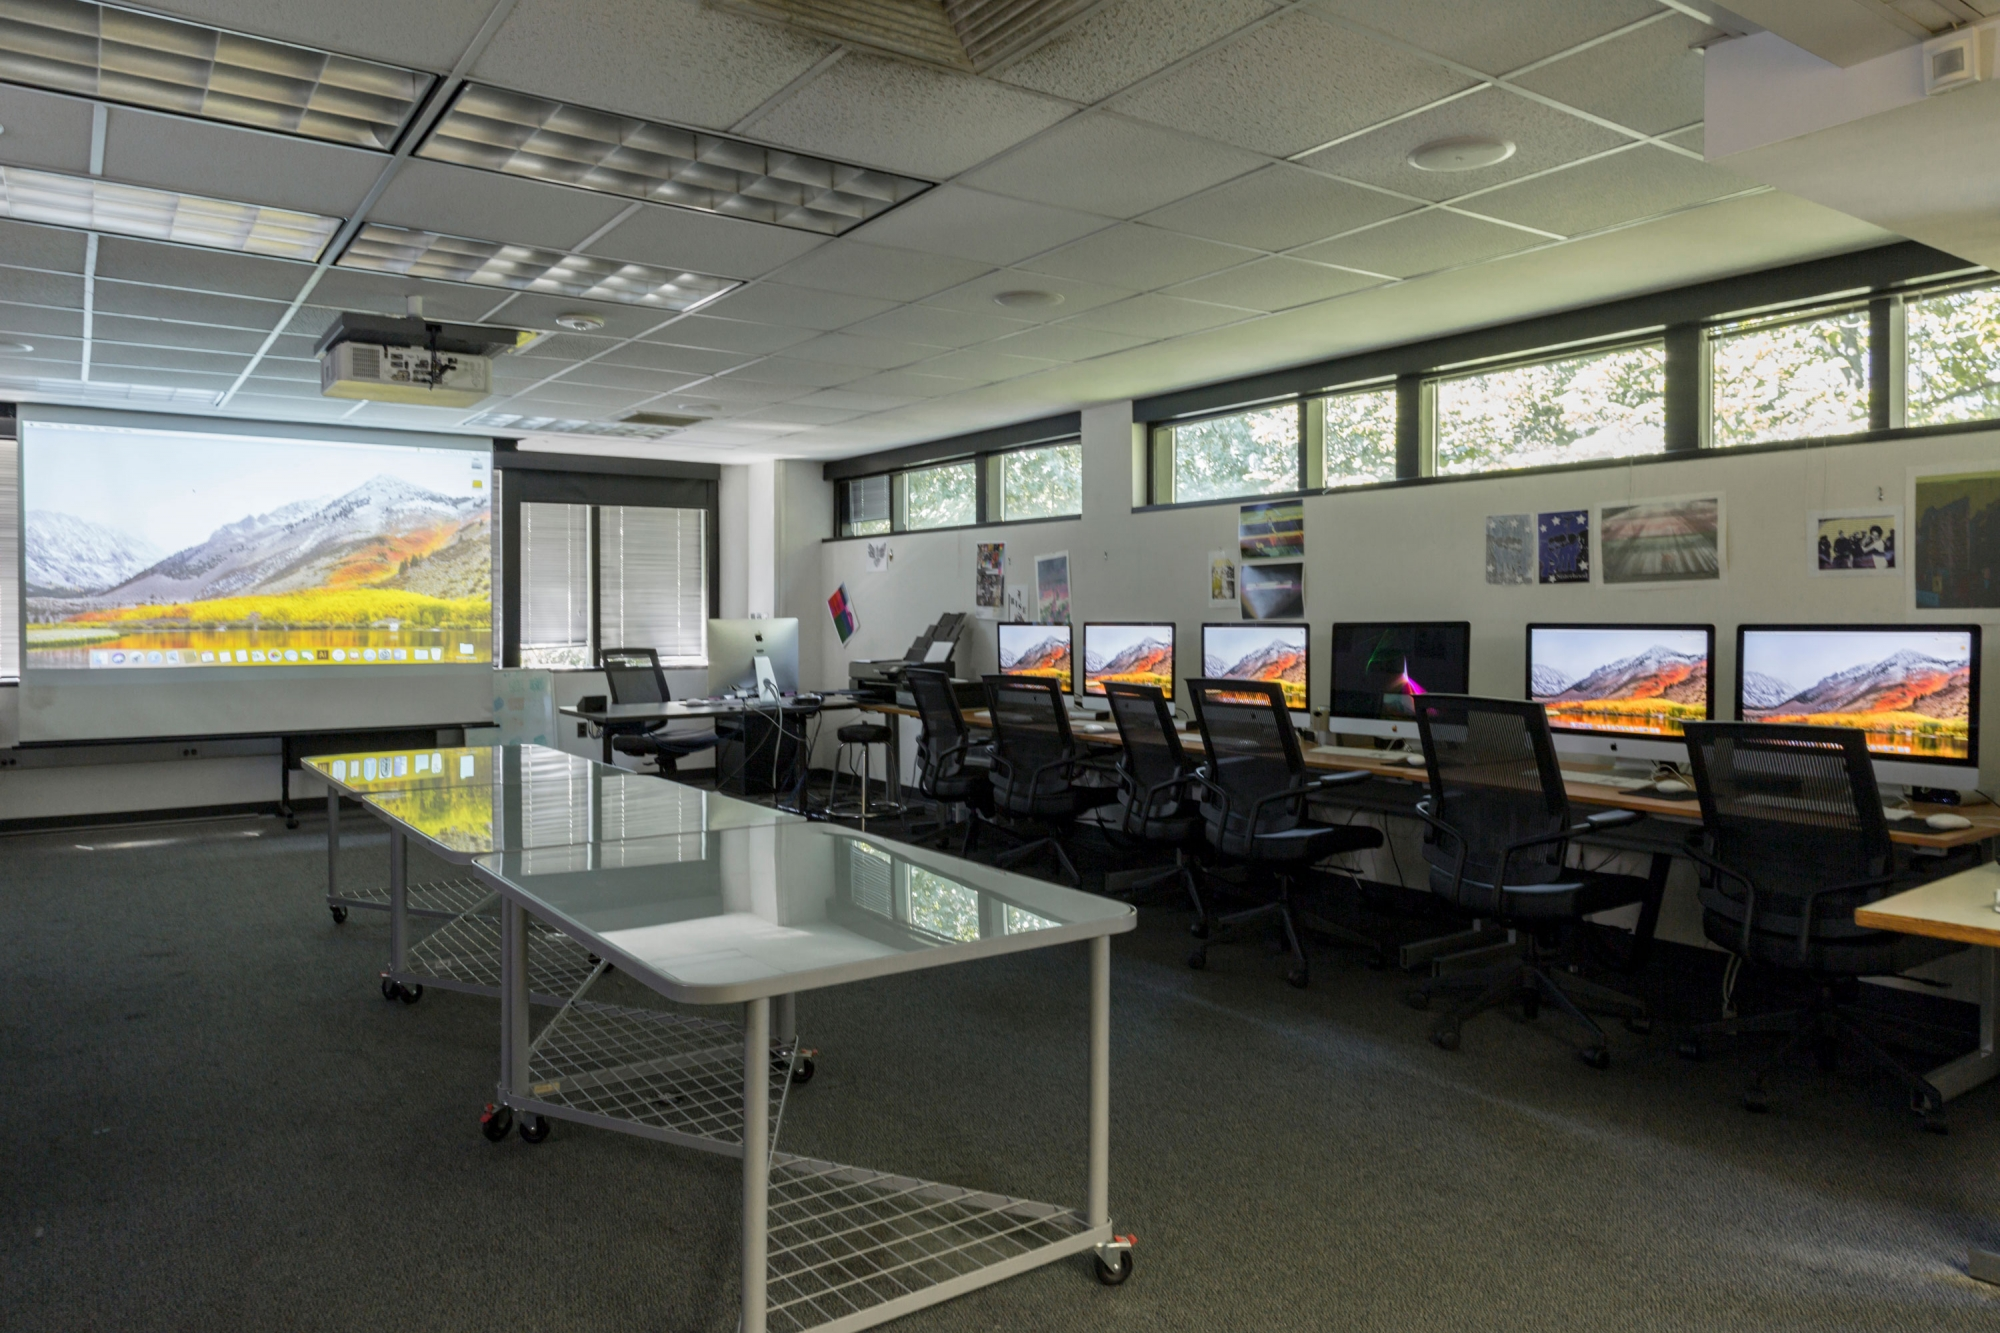 Mac computers sit at stations alongside a window and a several tables on wheels run down the center of the lab